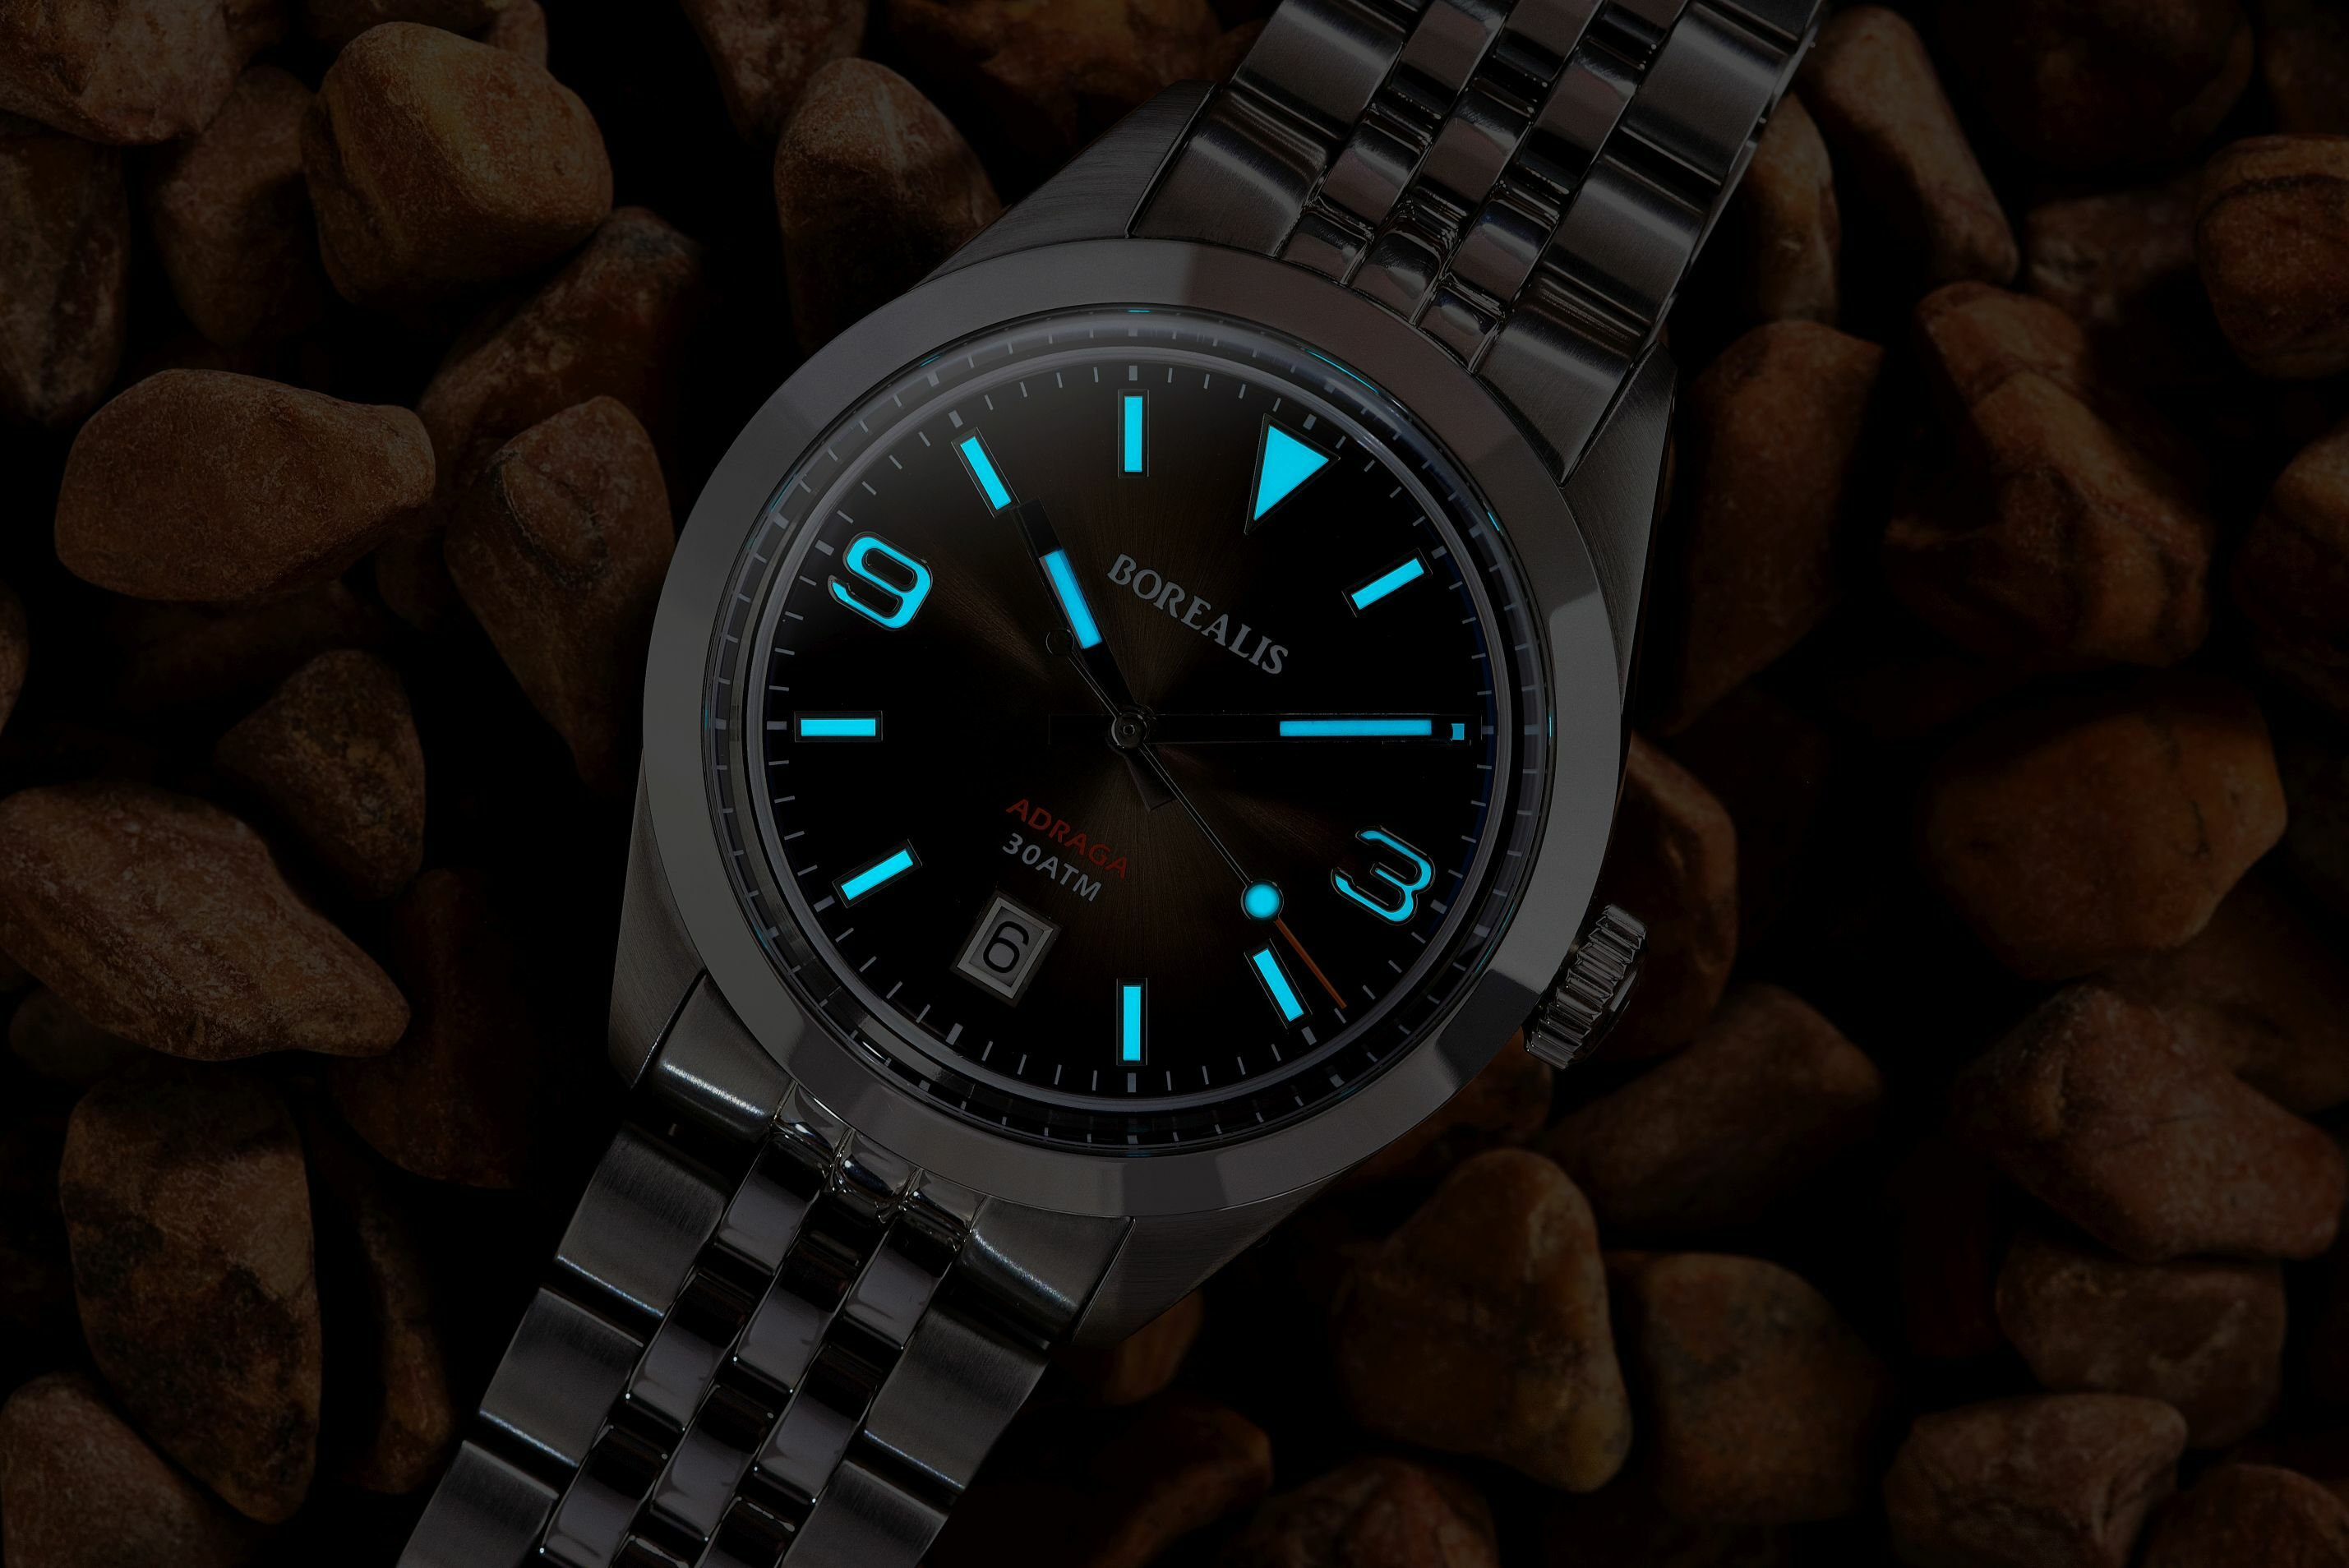 Borealis Adraga Stainless Steel Miyota 9015 fumed brown dial Commando Hands Date BGW9 Lume